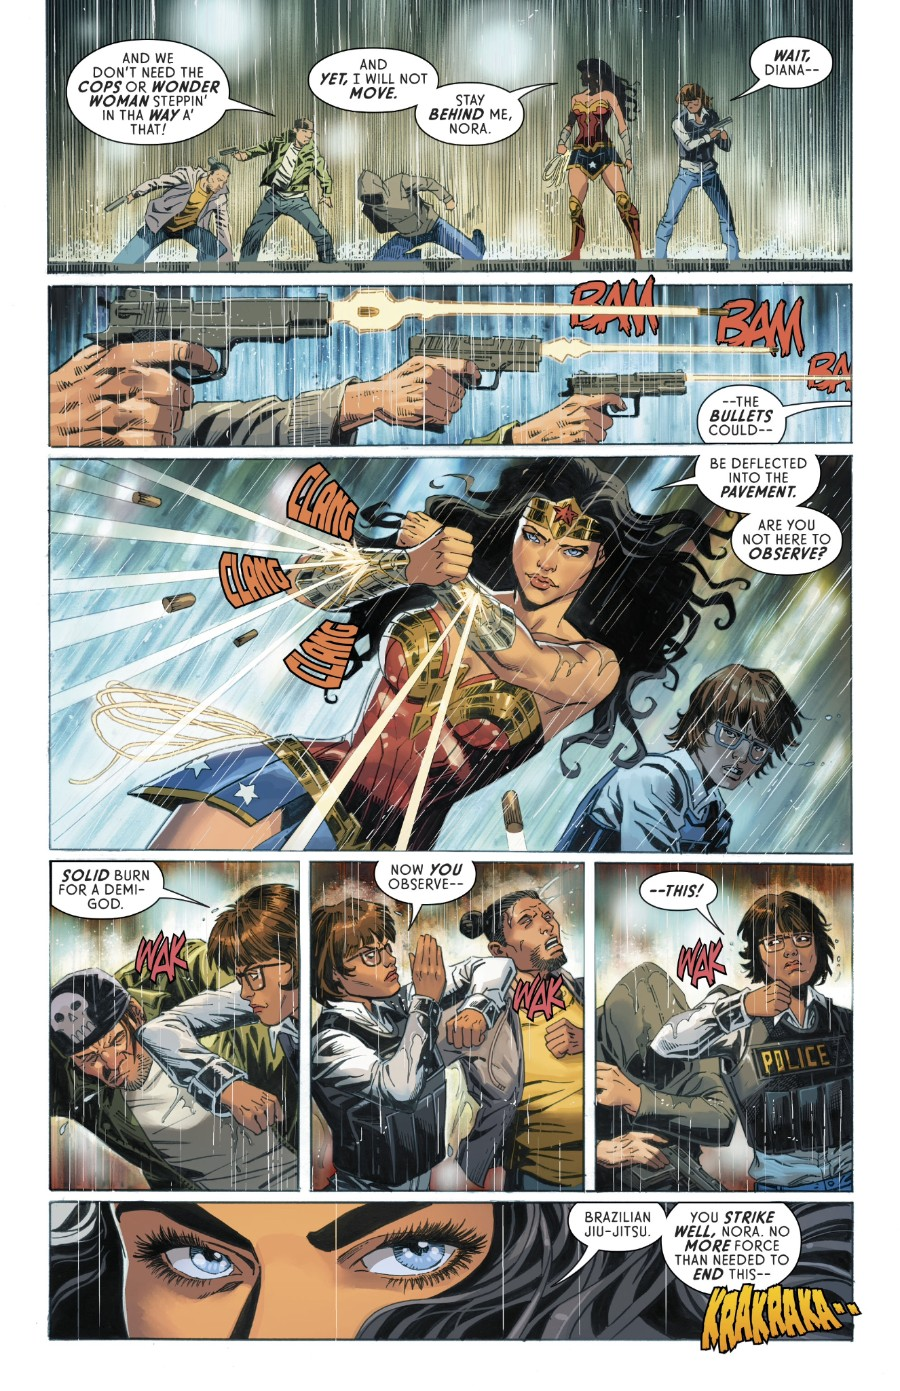 Wonder Woman #751, Page #3: Wonder Woman and Officer Nunes stop a crime